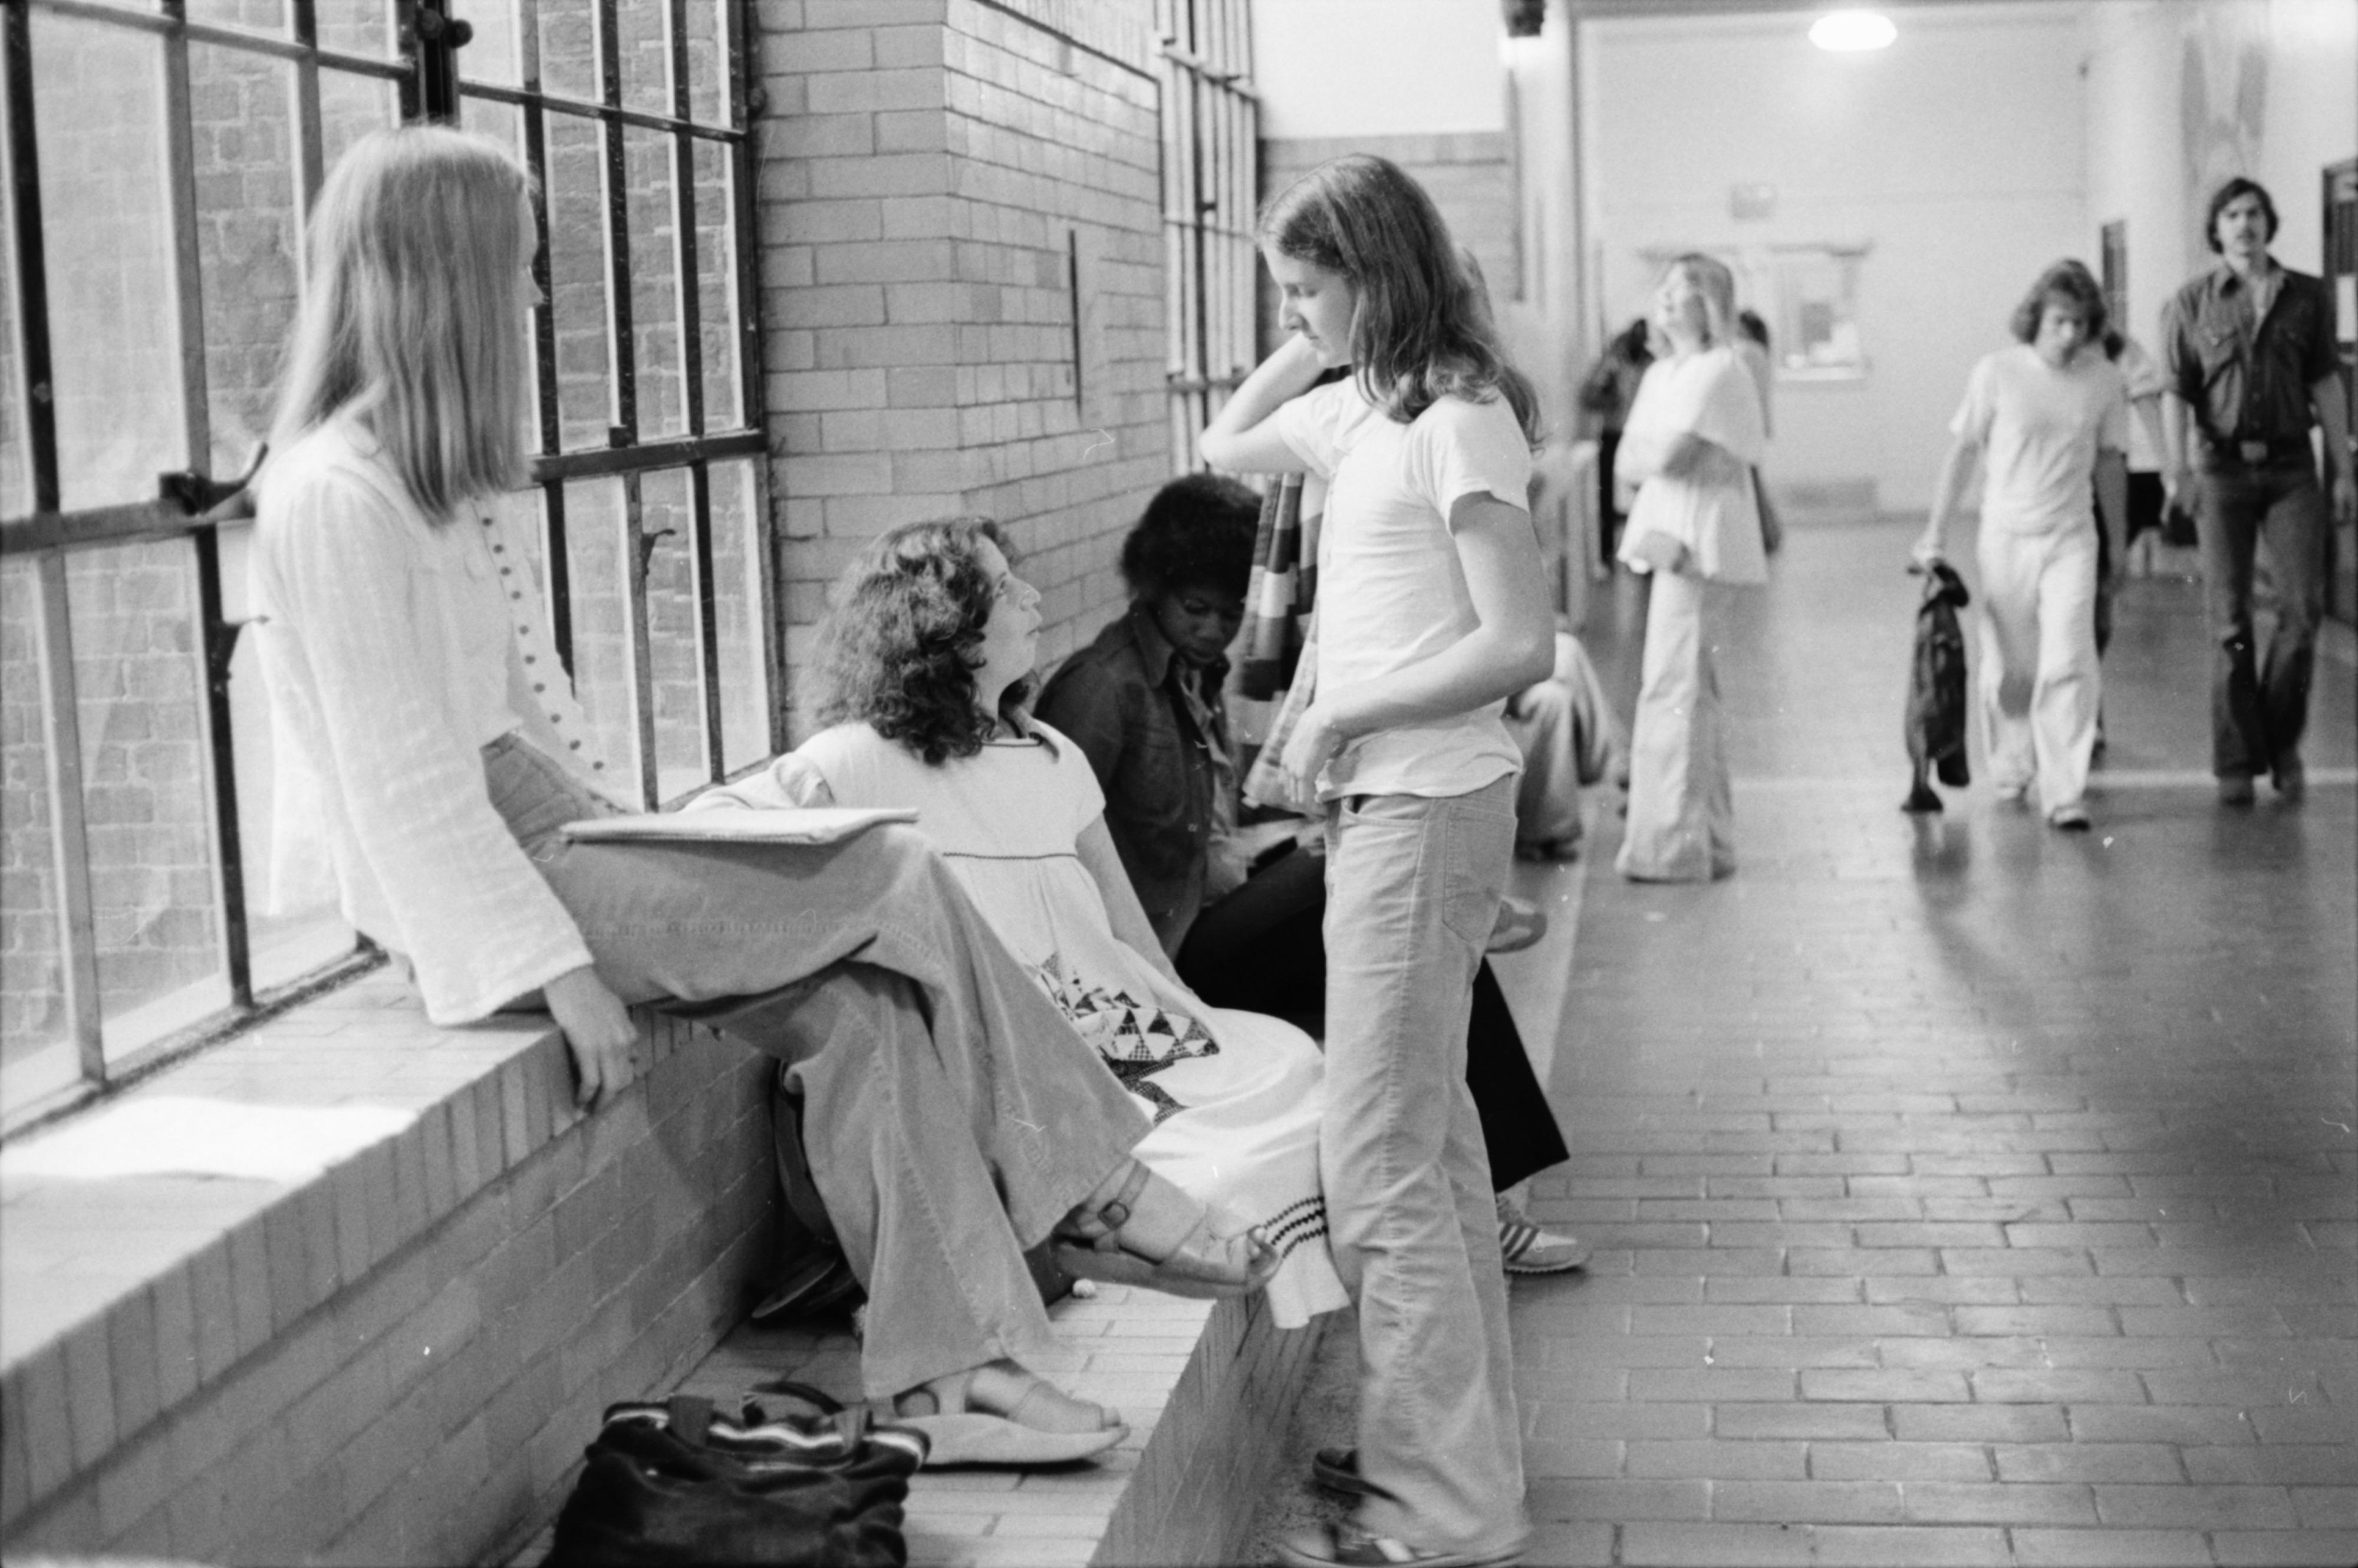 Community High School students, 1978 image